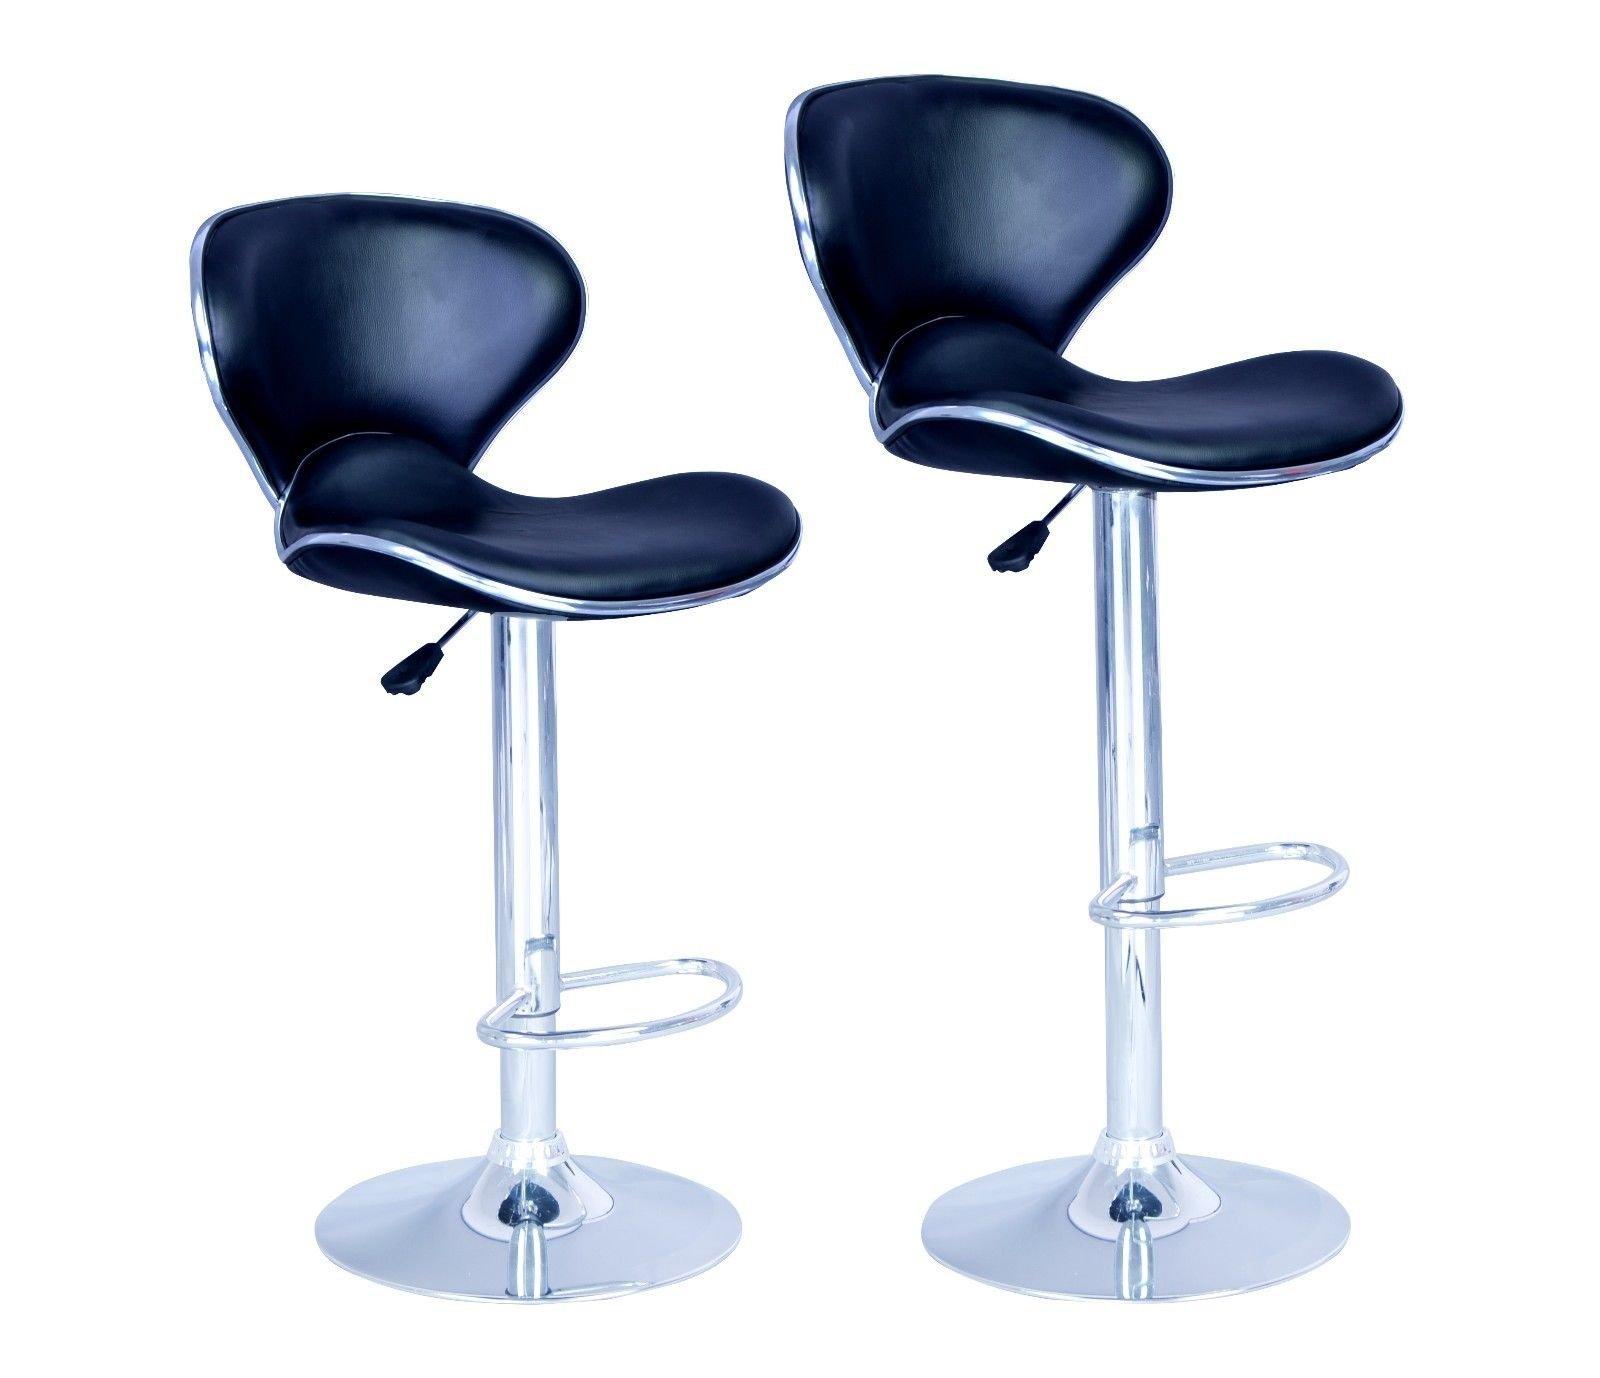 Ouhuang SET of 2 Bar Stools Black PU Leather Modern Hydraulic Swivel Dinning Chair B03